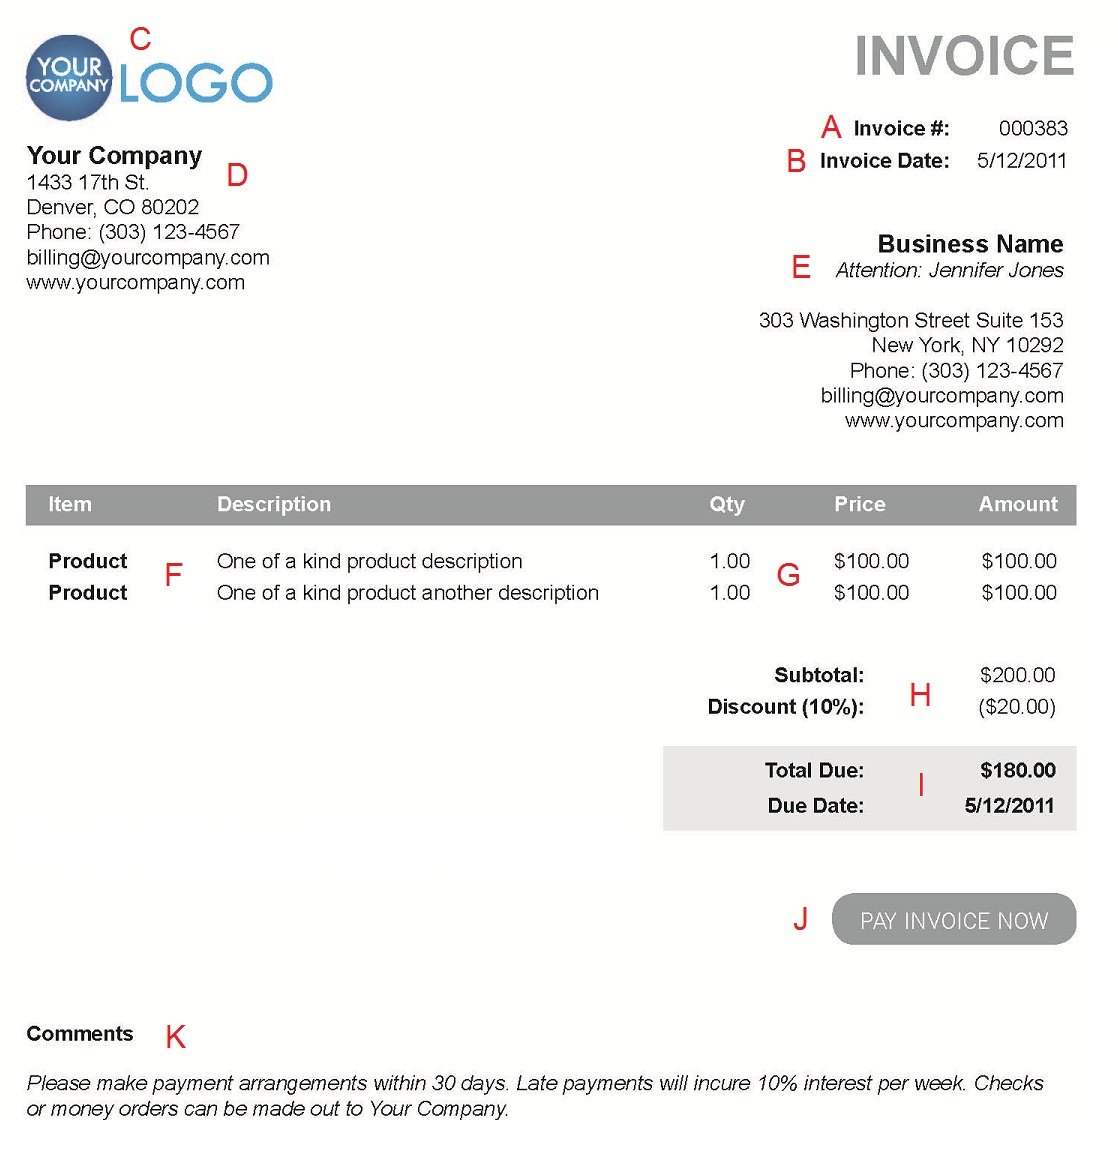 Usdgus  Pleasing The  Different Sections Of An Electronic Payment Invoice With Luxury A  With Cute Zoho Invoicing Also Paid Invoice Template In Addition Business Invoice App And Invoice Generator Software As Well As Pay Fedex Invoice Additionally Ford Invoice Price From Paysimplecom With Usdgus  Luxury The  Different Sections Of An Electronic Payment Invoice With Cute A  And Pleasing Zoho Invoicing Also Paid Invoice Template In Addition Business Invoice App From Paysimplecom